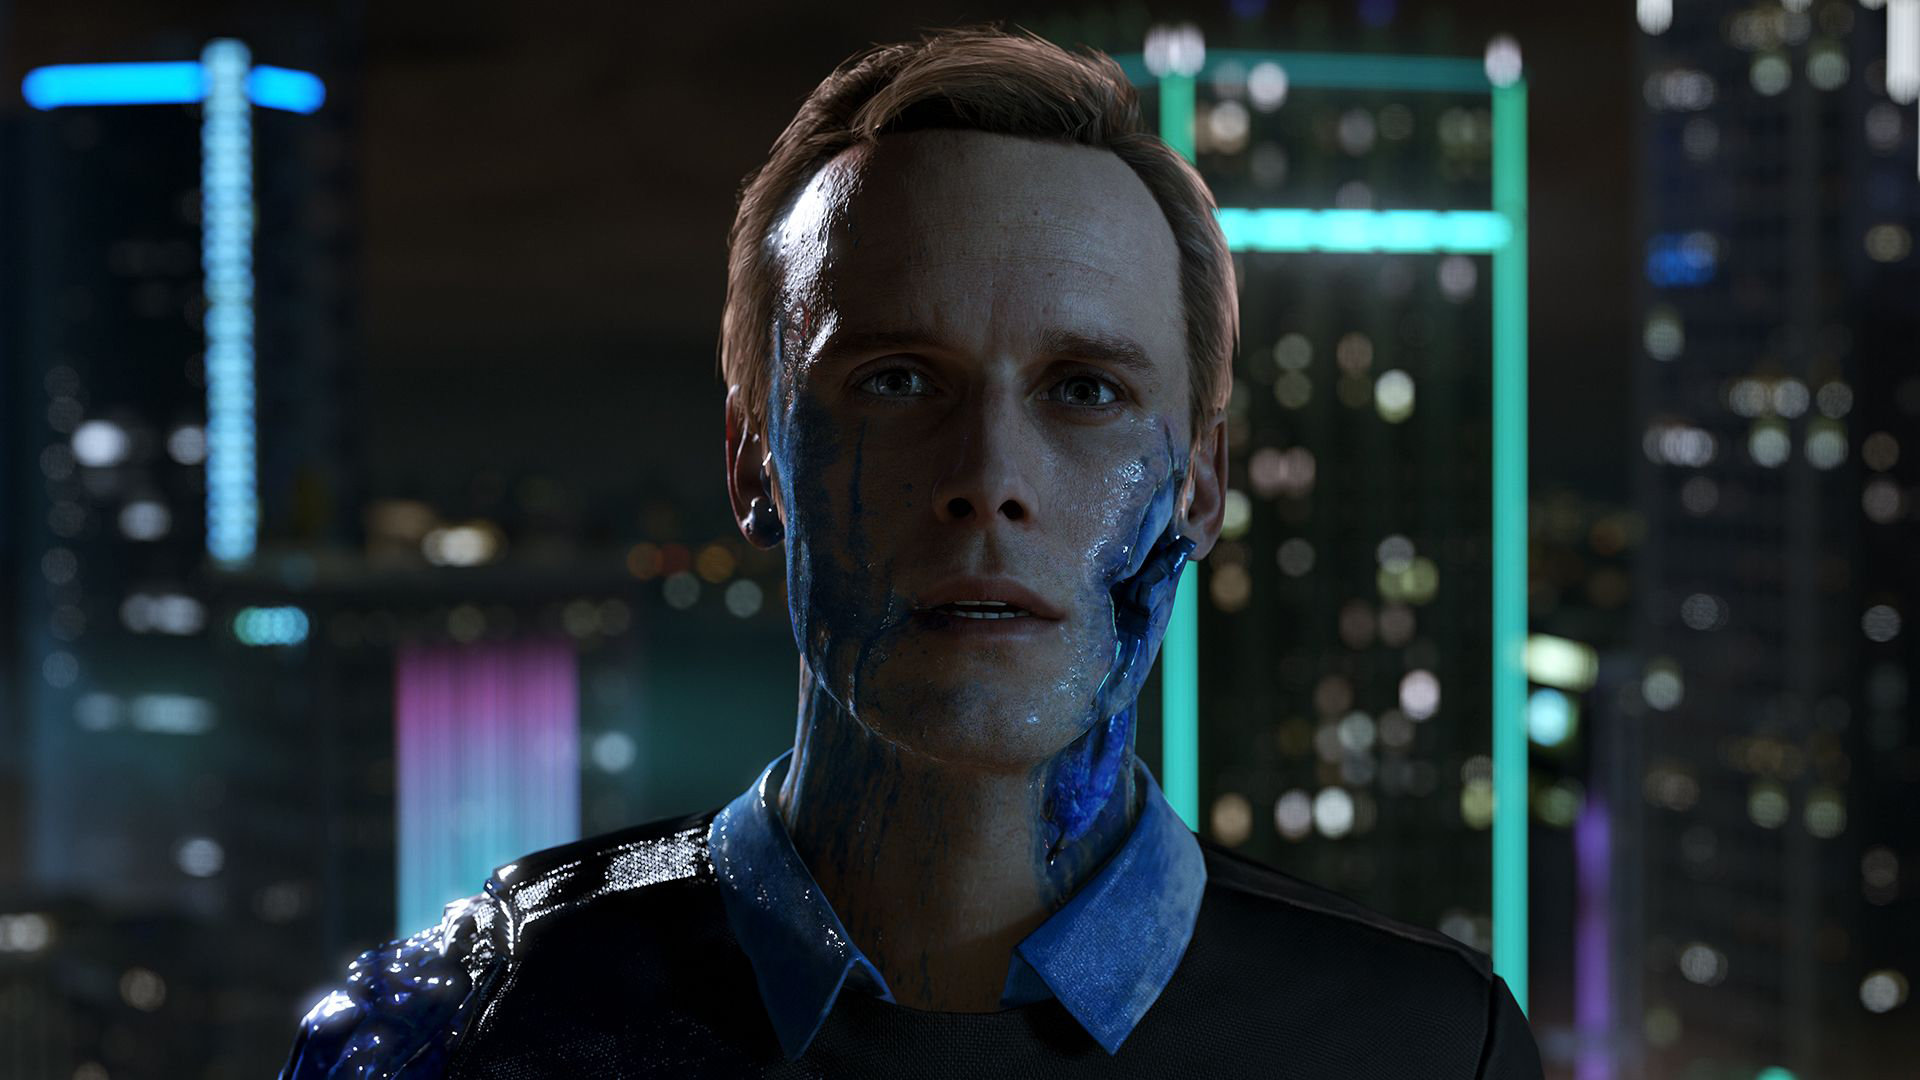 Quantic Dream Created Hundreds of Offensive Photoshops of Employees